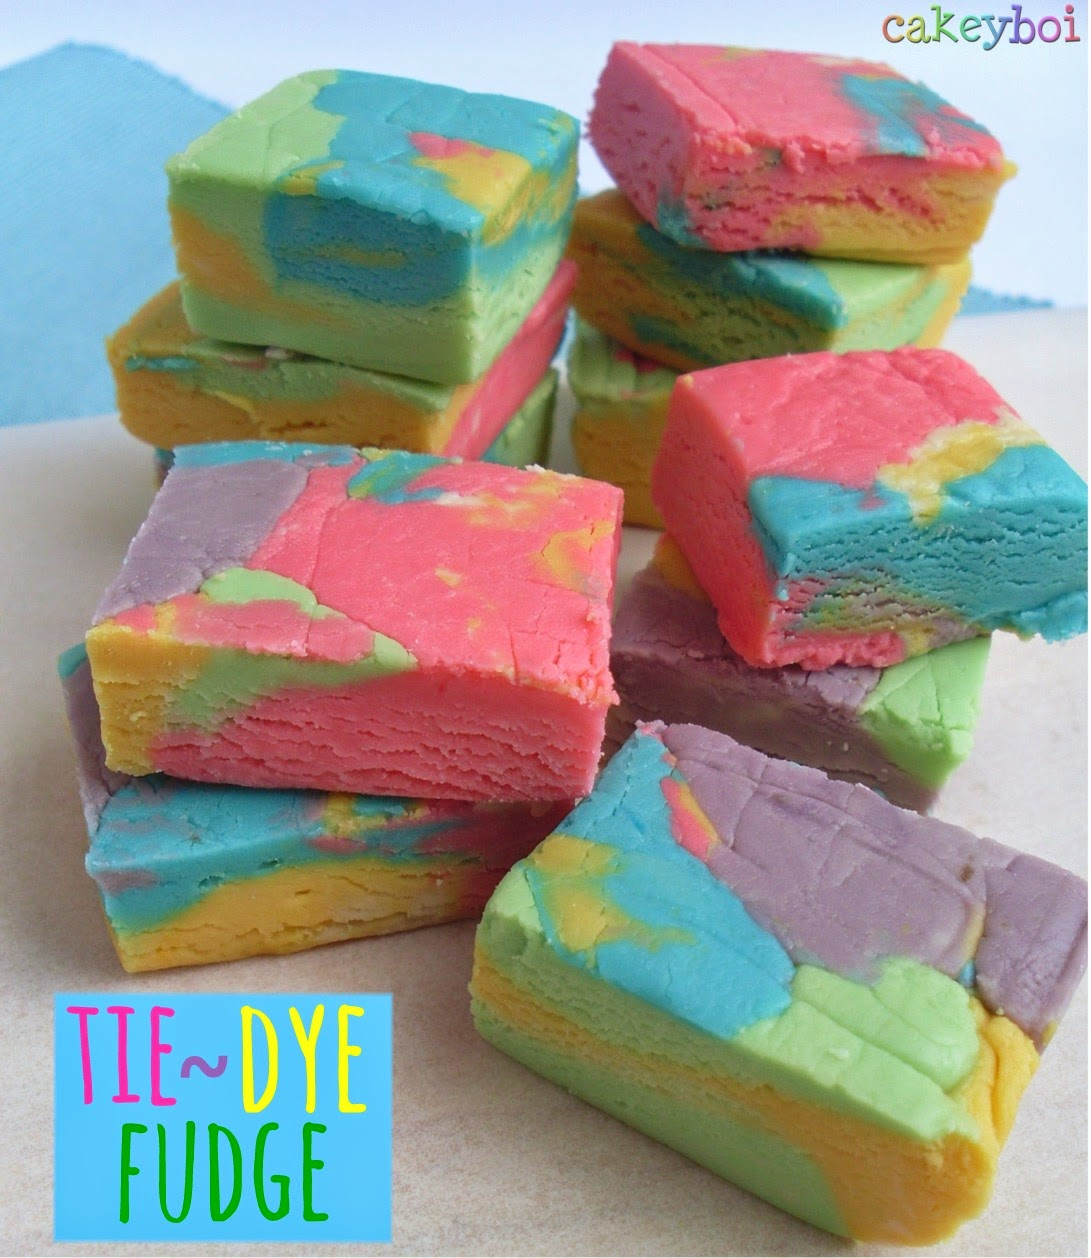 white chocolate flavoured multi-coloured fudge recipe